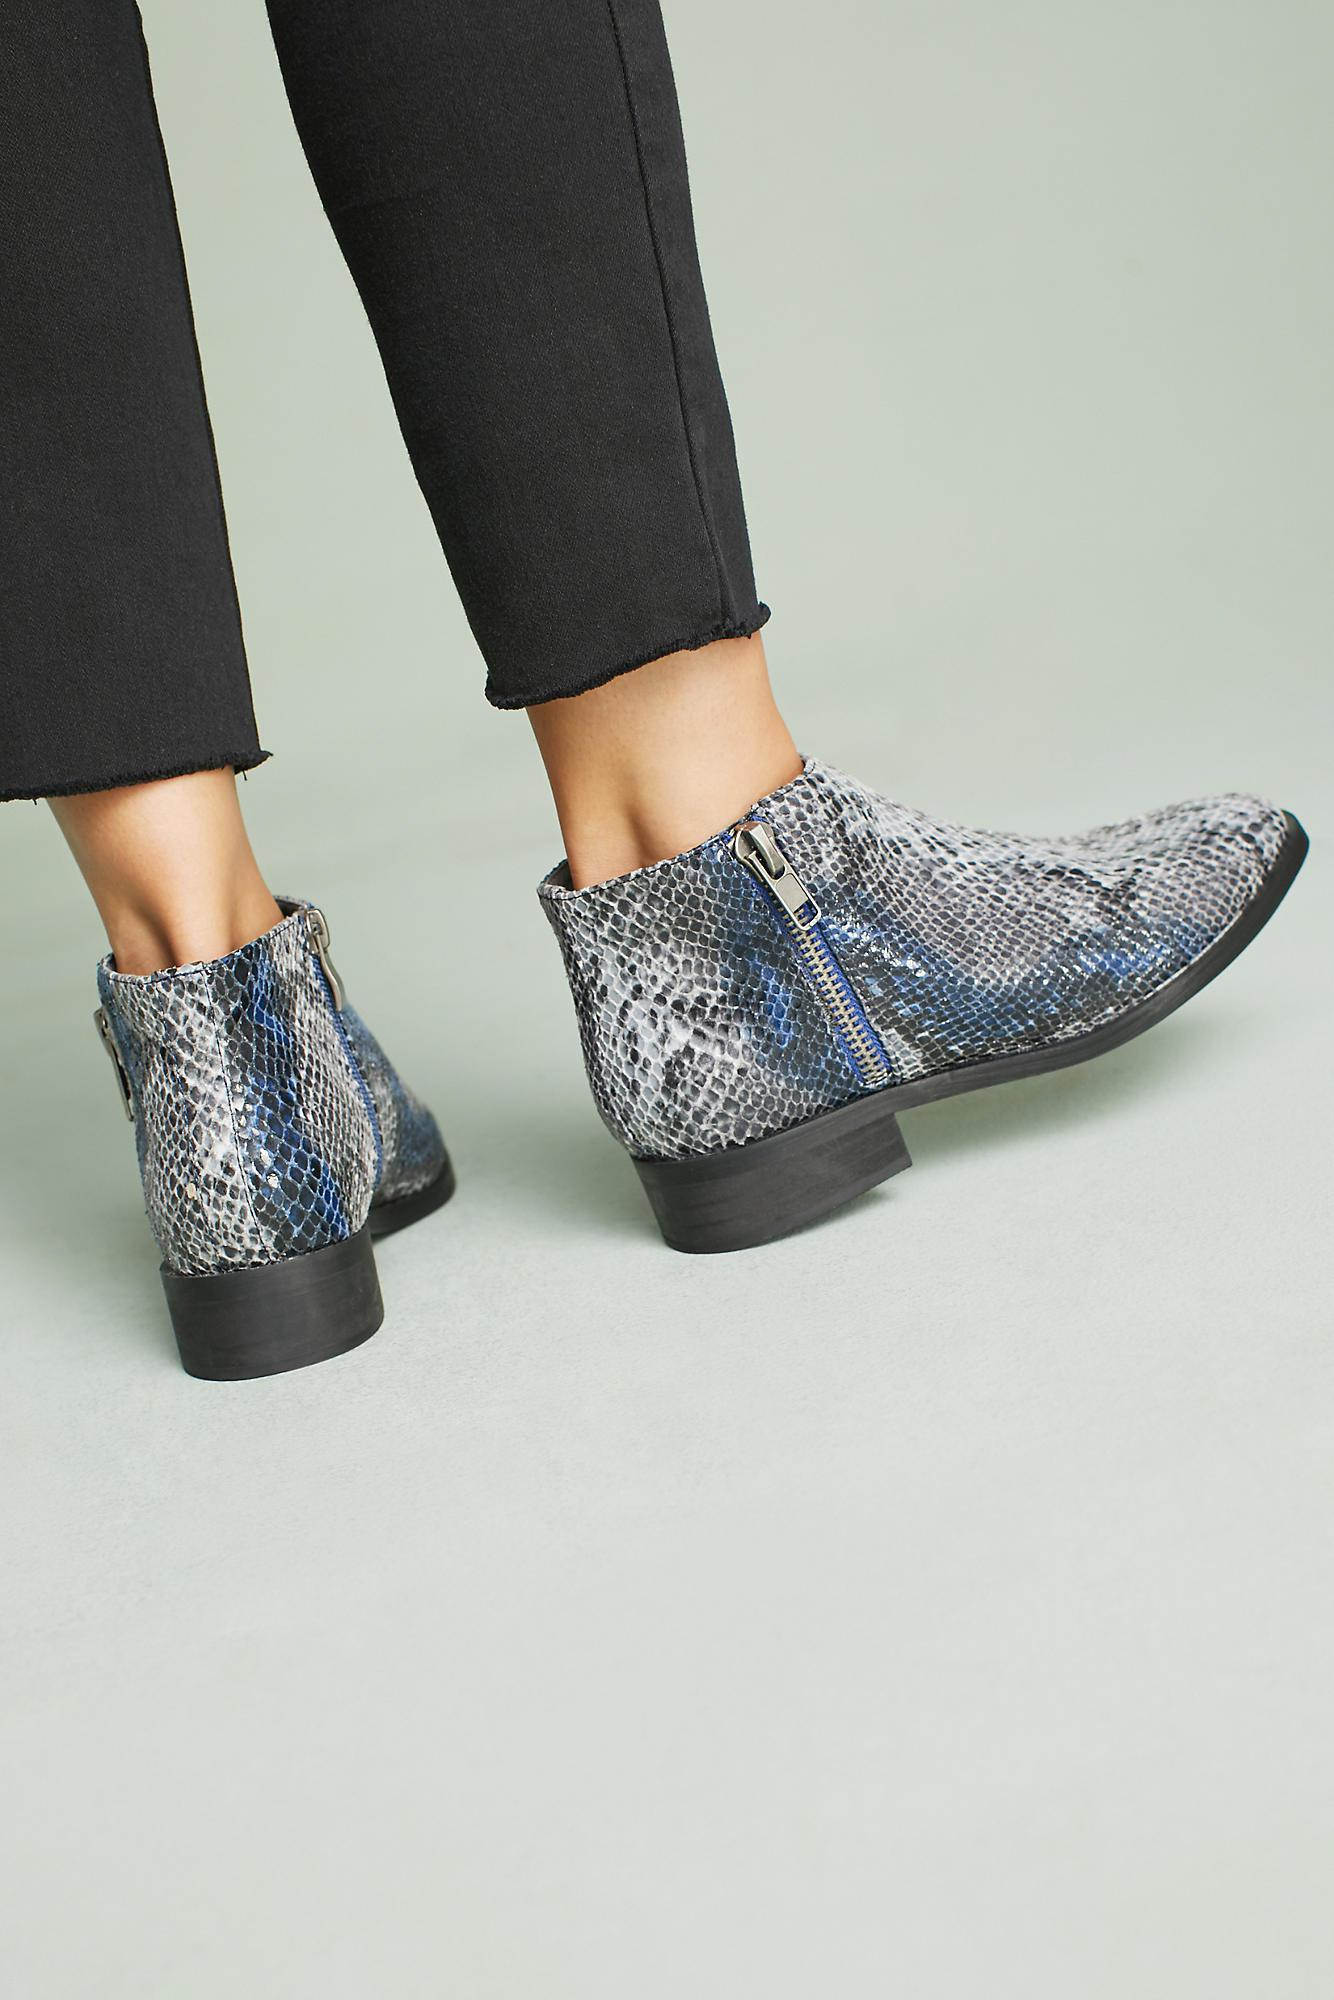 Anthropologie Leather Vanessa Wu Snakeskin Ankle Boots in Blue